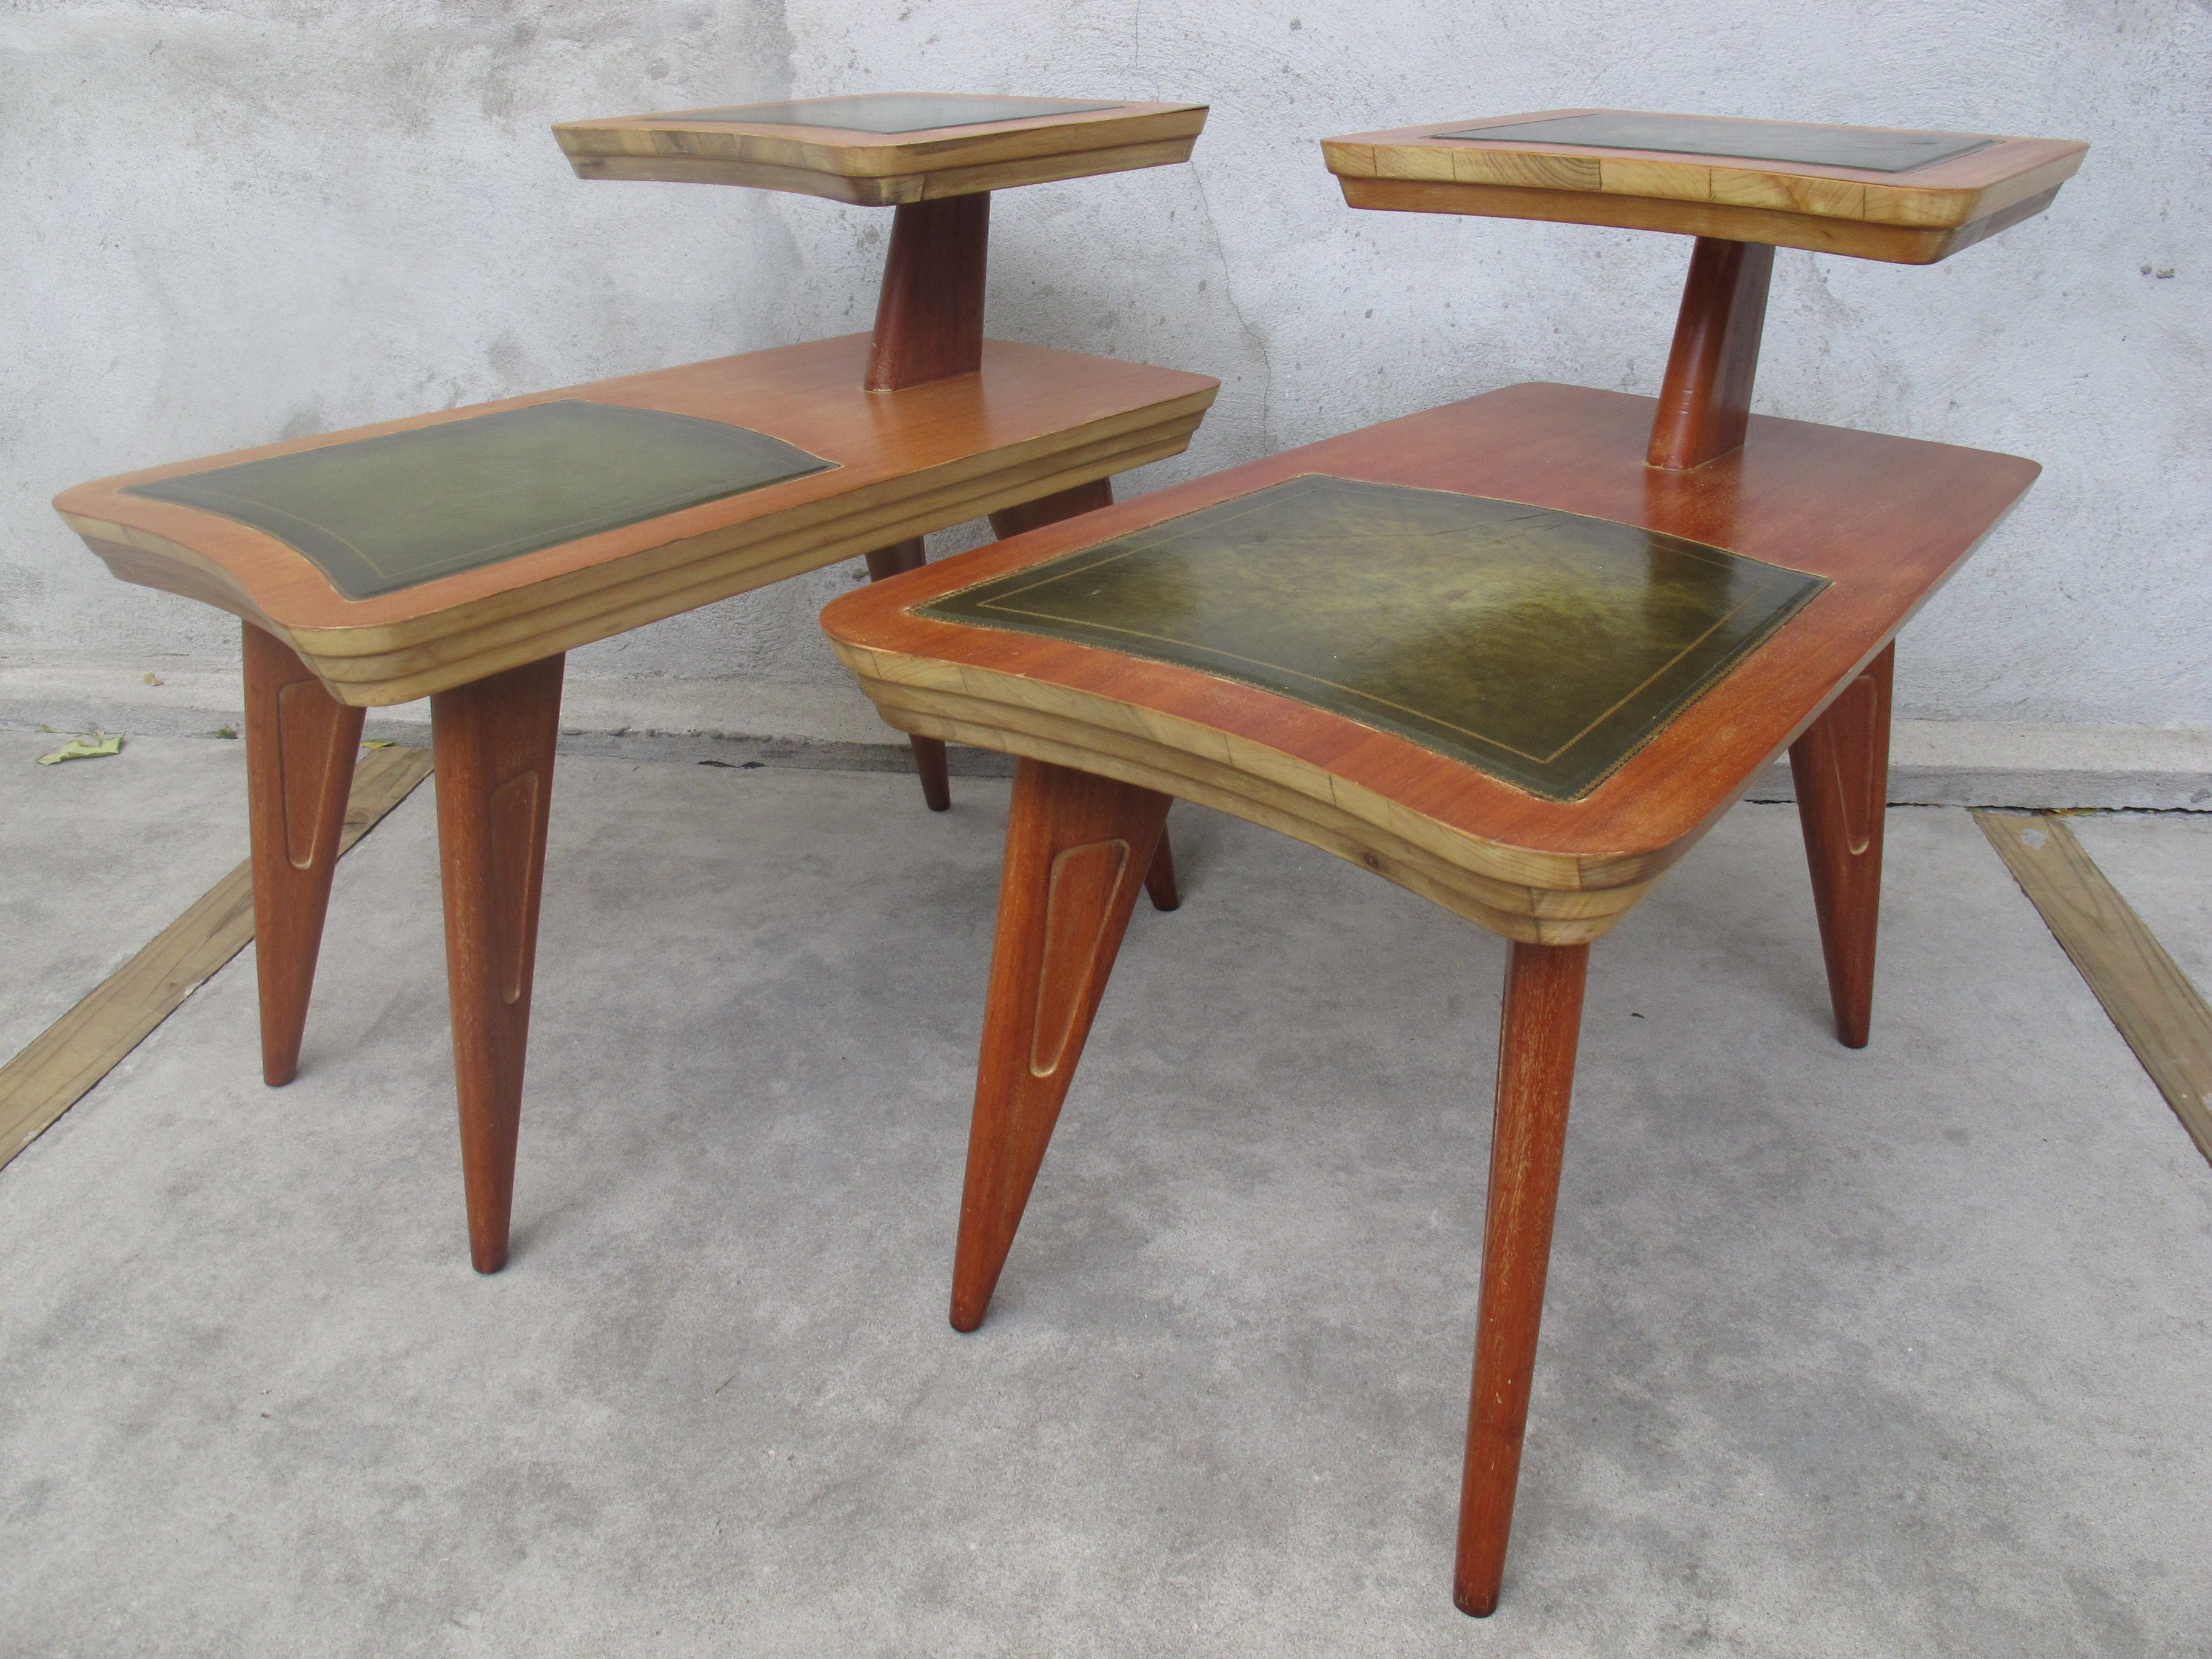 PAIR OF MID CENTURY TWO TIER END TABLES WITH LEATHER INLAYS BY